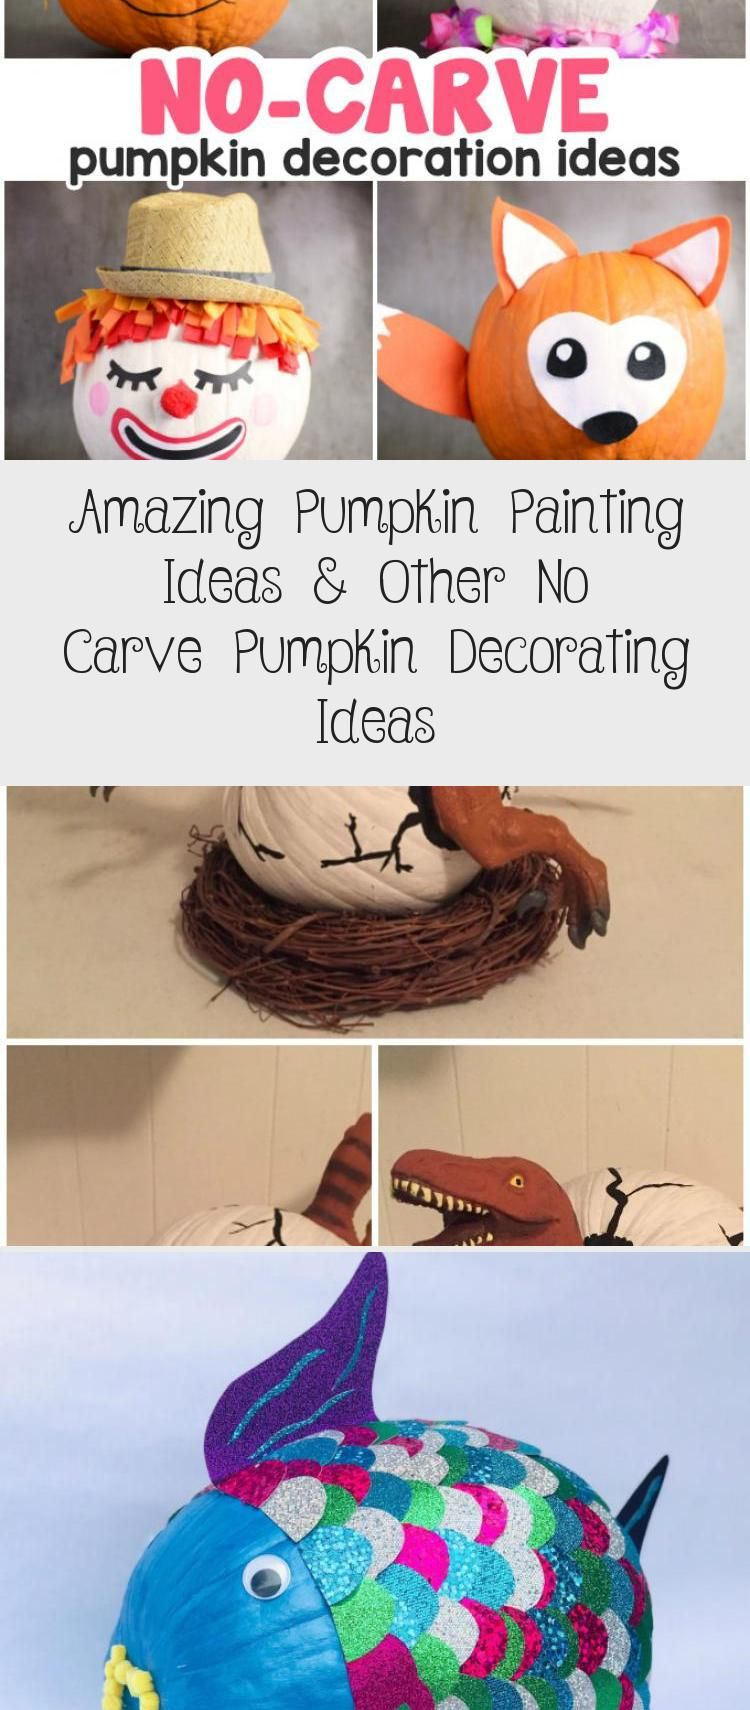 Amazing Pumpkin Painting Ideas & Other No Carve Pumpkin Decorating Ideas #Housepaintingideas #paintingideasForFurniture #paintingideasVsco #paintingideasBeach #paintingideasNature #pumpkinpaintingideas